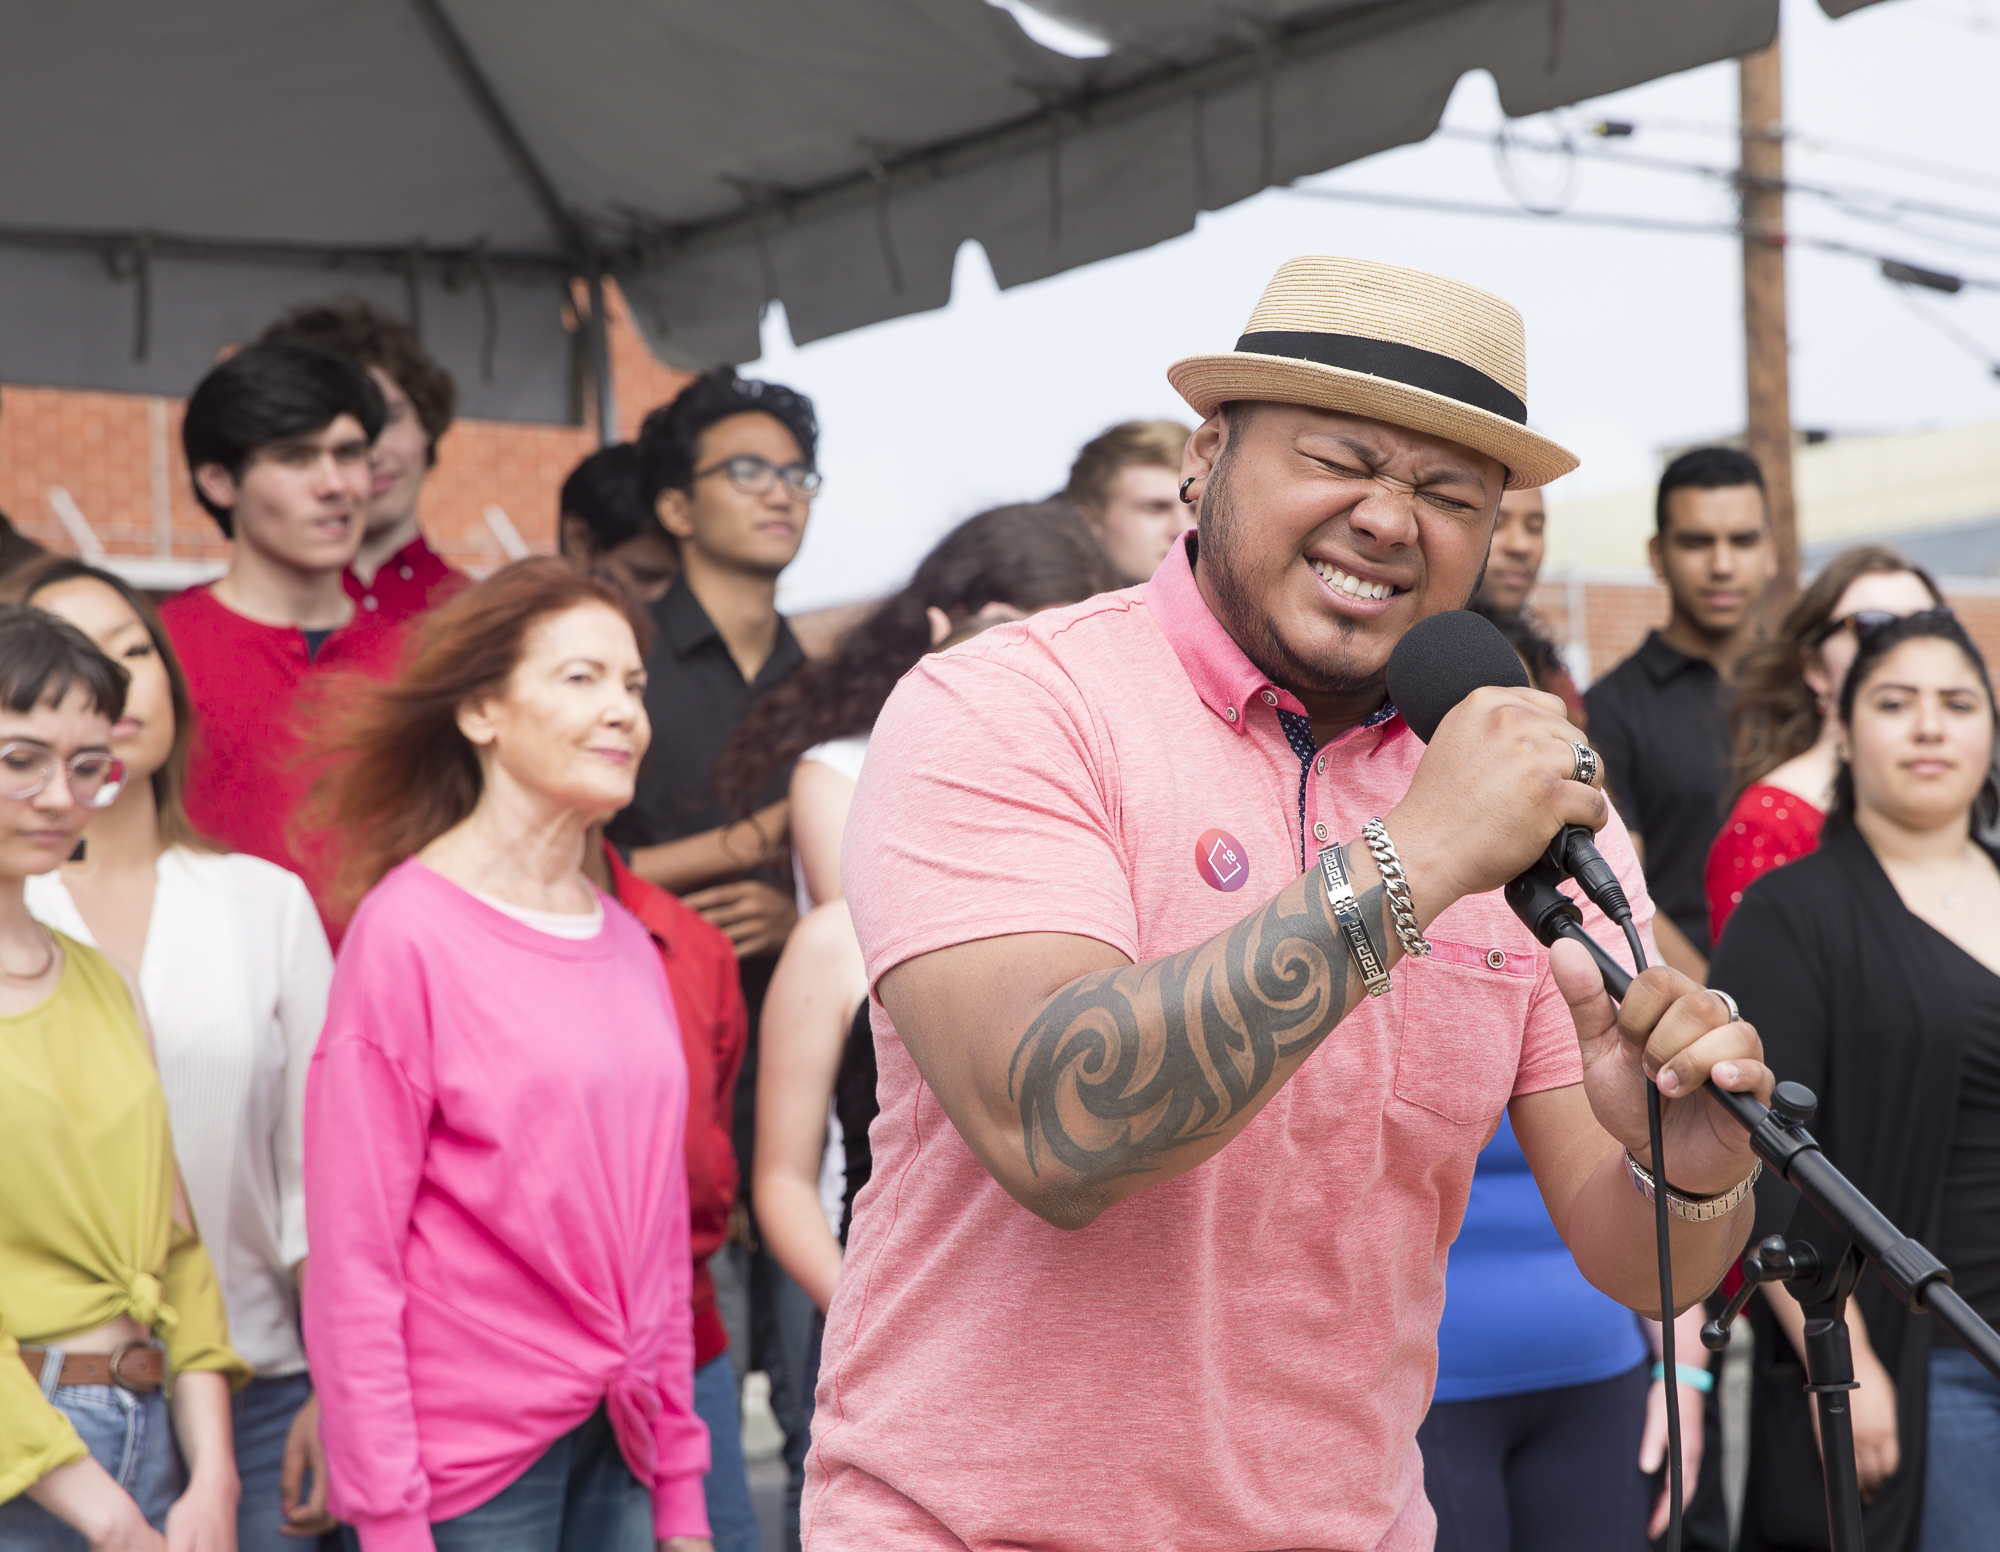 Santa Monica College (SMC) sophomore and member of the SMC Jazz Vocal Ensemble Andy Hernandez performs a classic song by Harry Connick Jr. track during the Pico Block Party festivities that took place at the 18th street Arts Center in Santa Monica, California on Saturday May 19, 2018. The Pico Block Party is a celebration of artists and cultures of the Pico neighborhood in Santa Monica with the festivities primarily focusing on youth artists and empowering youth voices. (Matthew Martin/Corsair Photo)